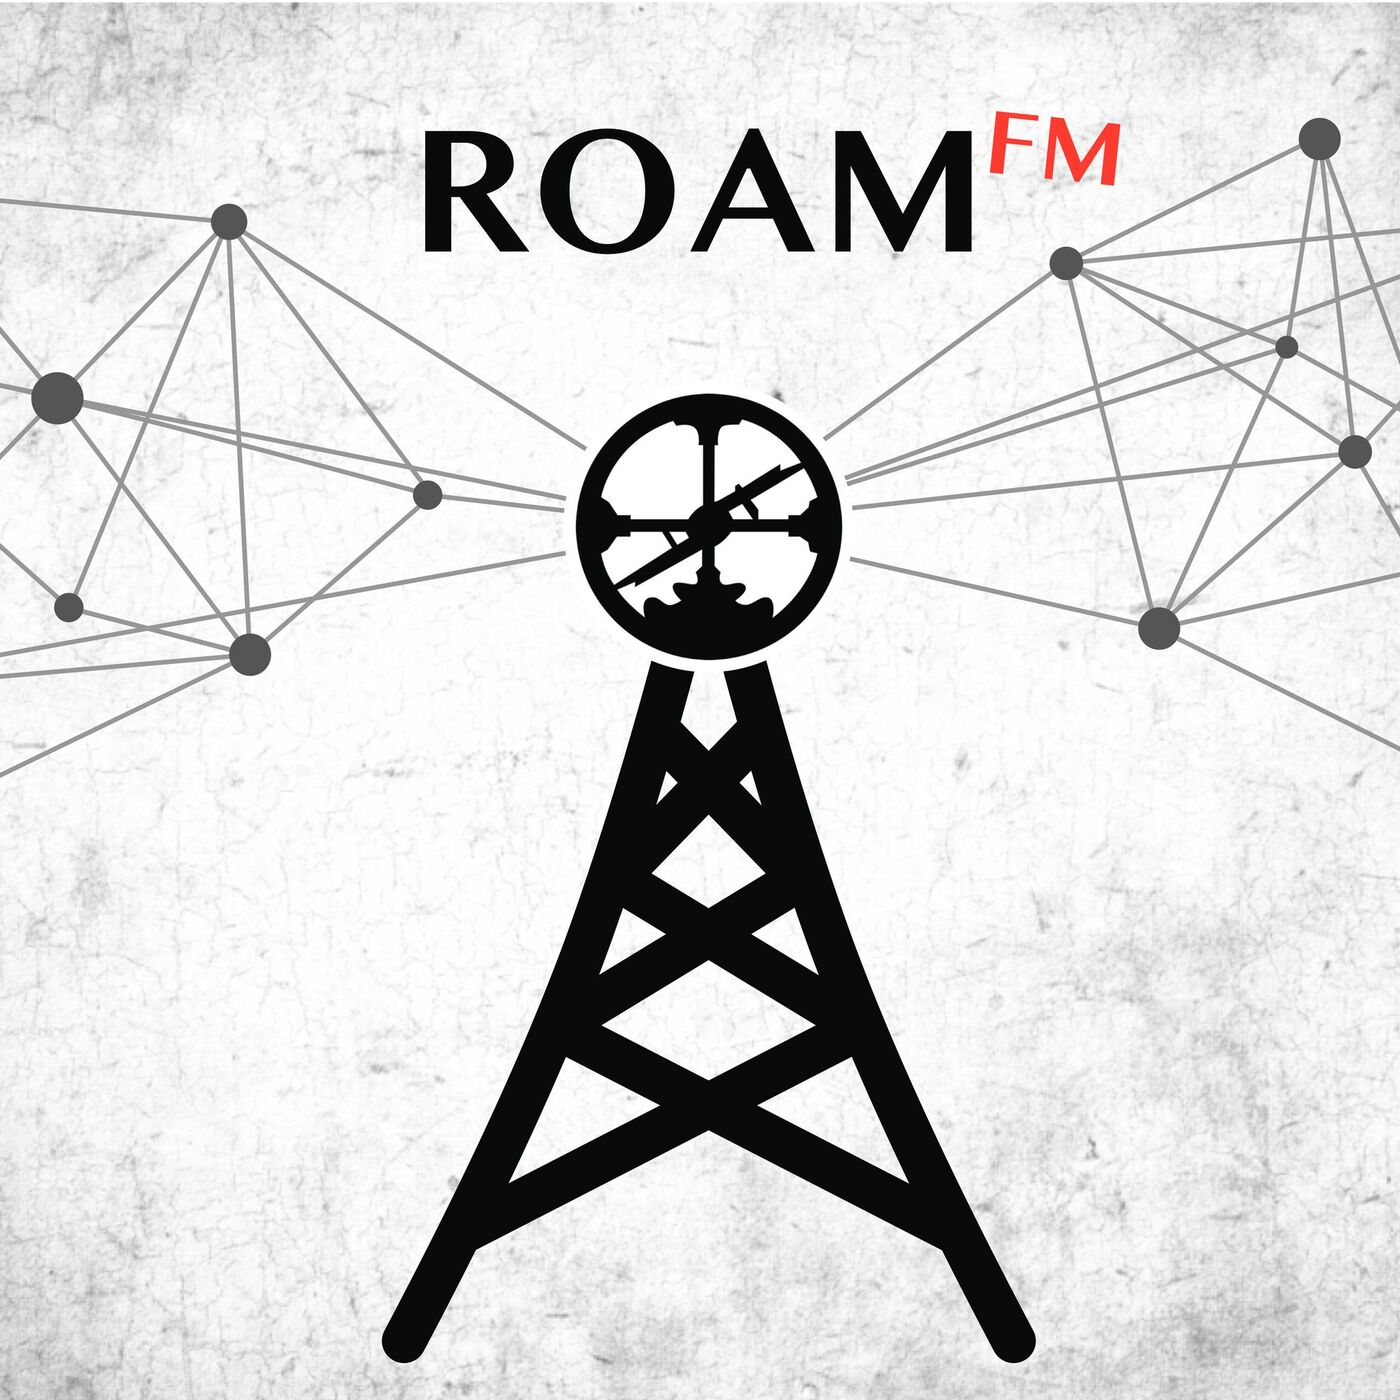 RoamFM RoamFM is the podcast all about Roam Research, for members of the #roamcult. Join us as we dive into the minds of amazing Roam users, taking a peek into how they use Roam to create wonderful connections.